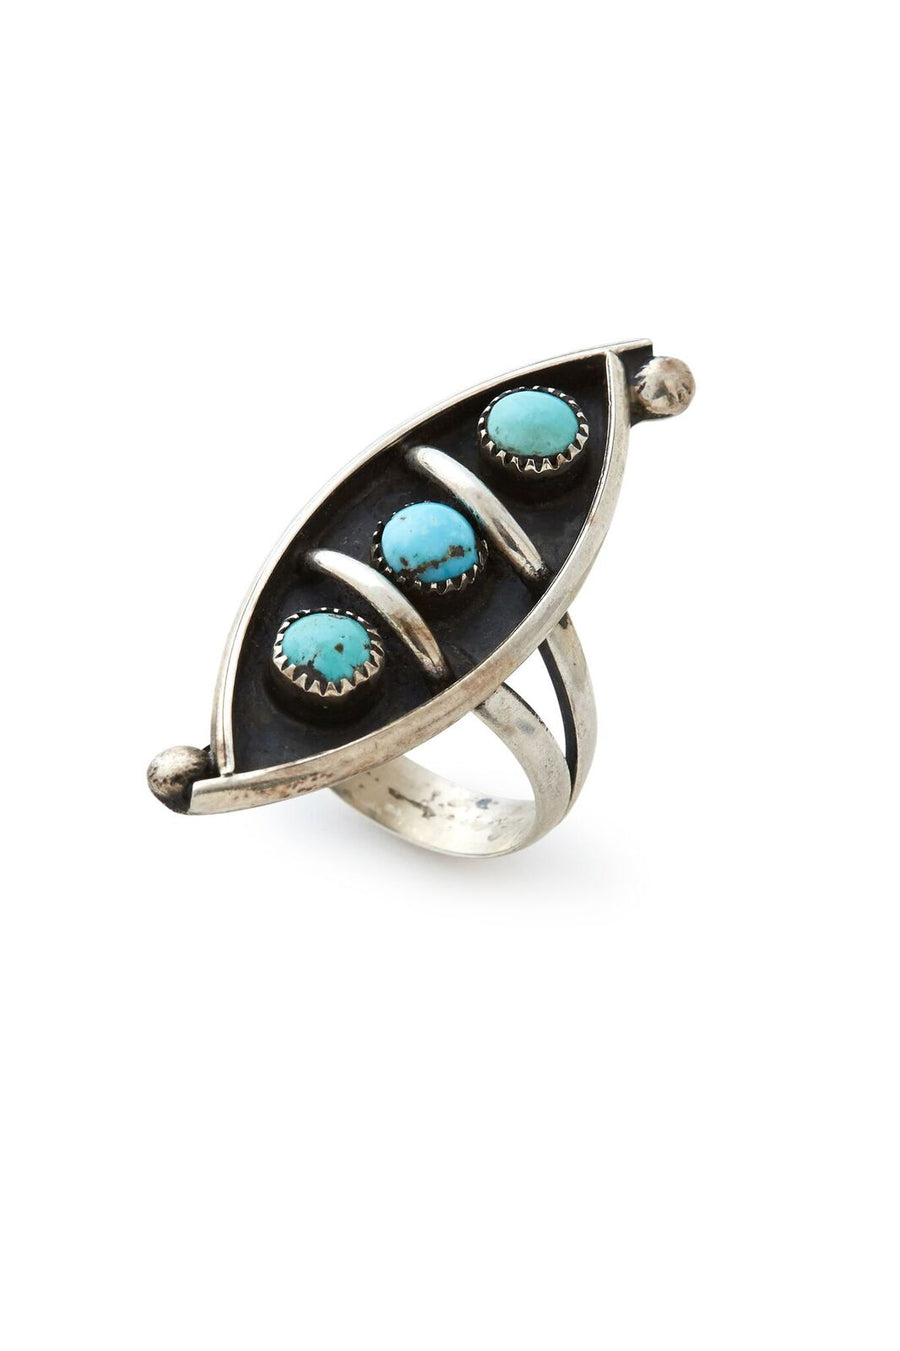 Sterling Silver Three Peas in a Pod Turquoise Ring - SZ 5.75